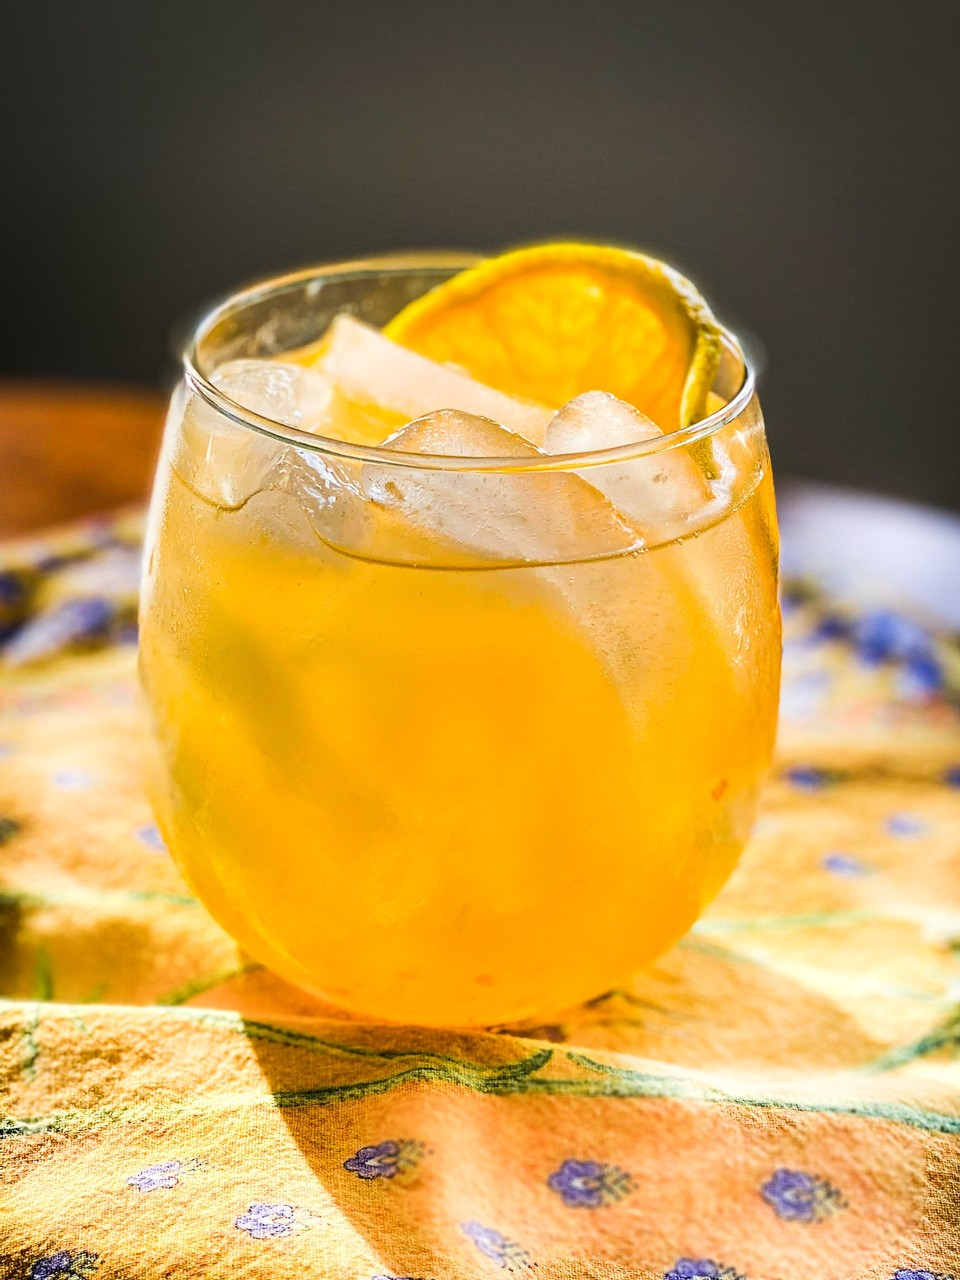 drink in a small glass on yellow tablecloth with orange slice